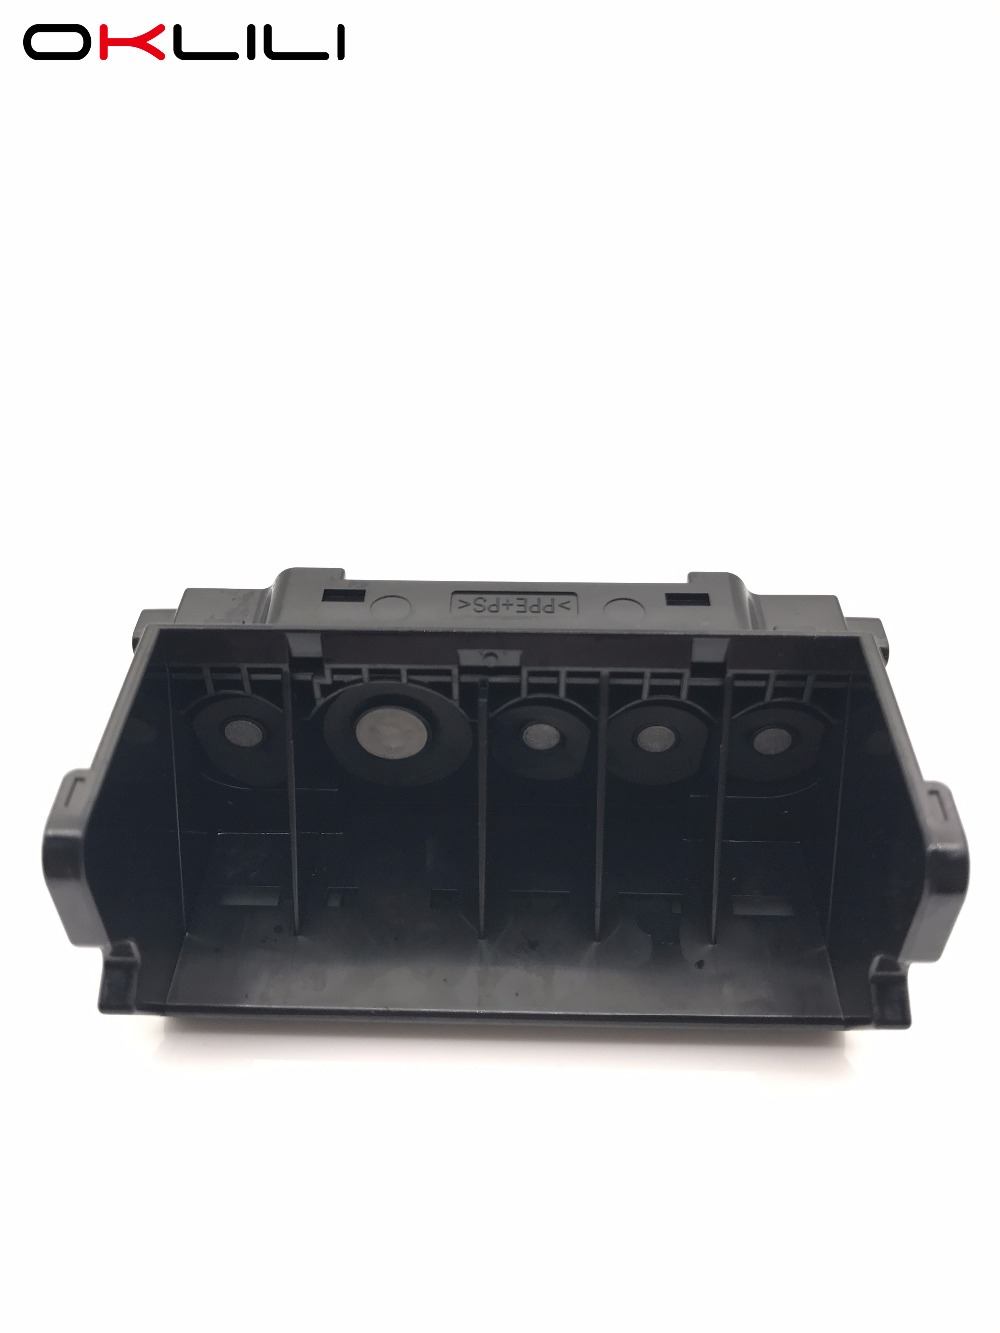 QY6-0073 Printhead Print Head for Canon iP3600 iP3680 MP540 MP560 MP568 MP620 MX860 MX868 MX870 MX878 MG5140 MG5180 MG5150 MP550 image